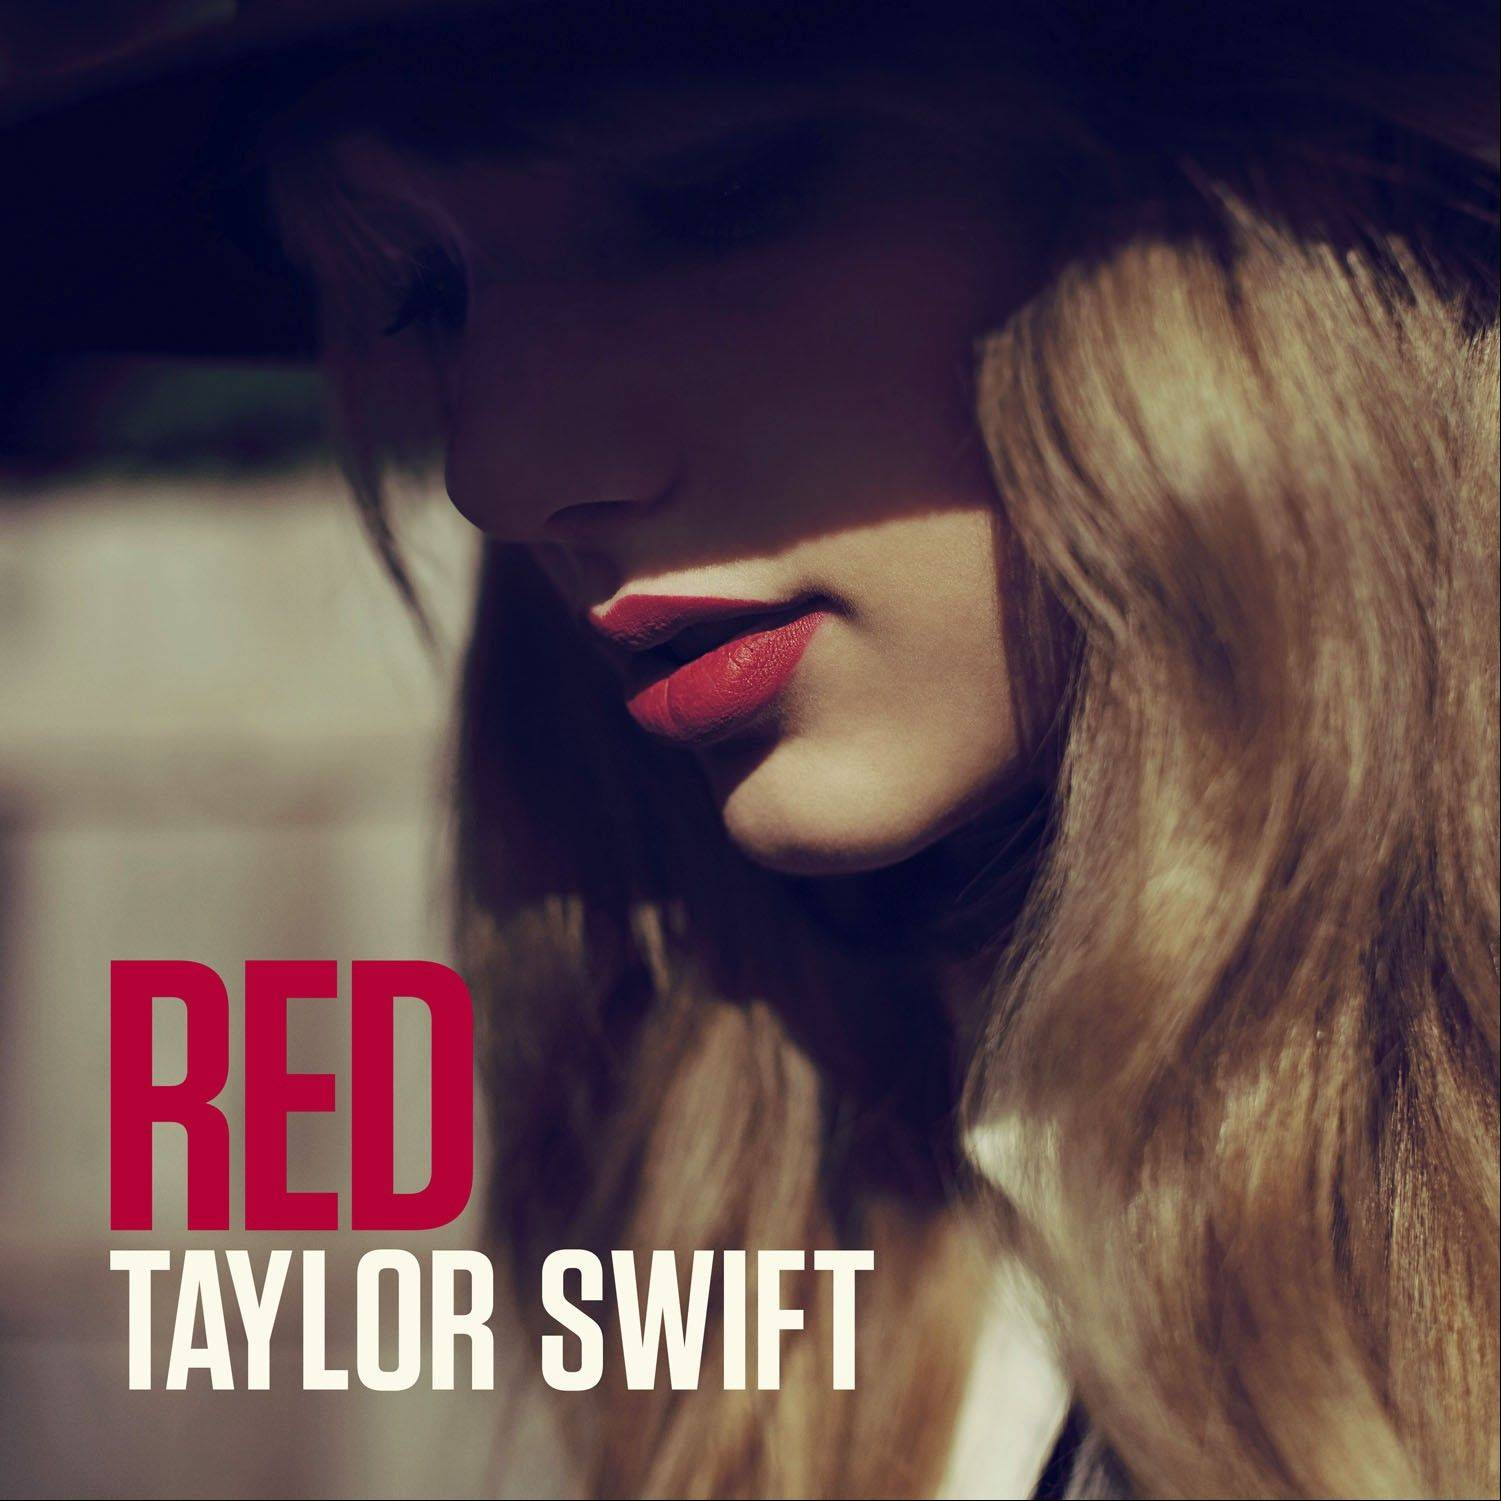 Taylor Swift's 'Red' far from vibrant